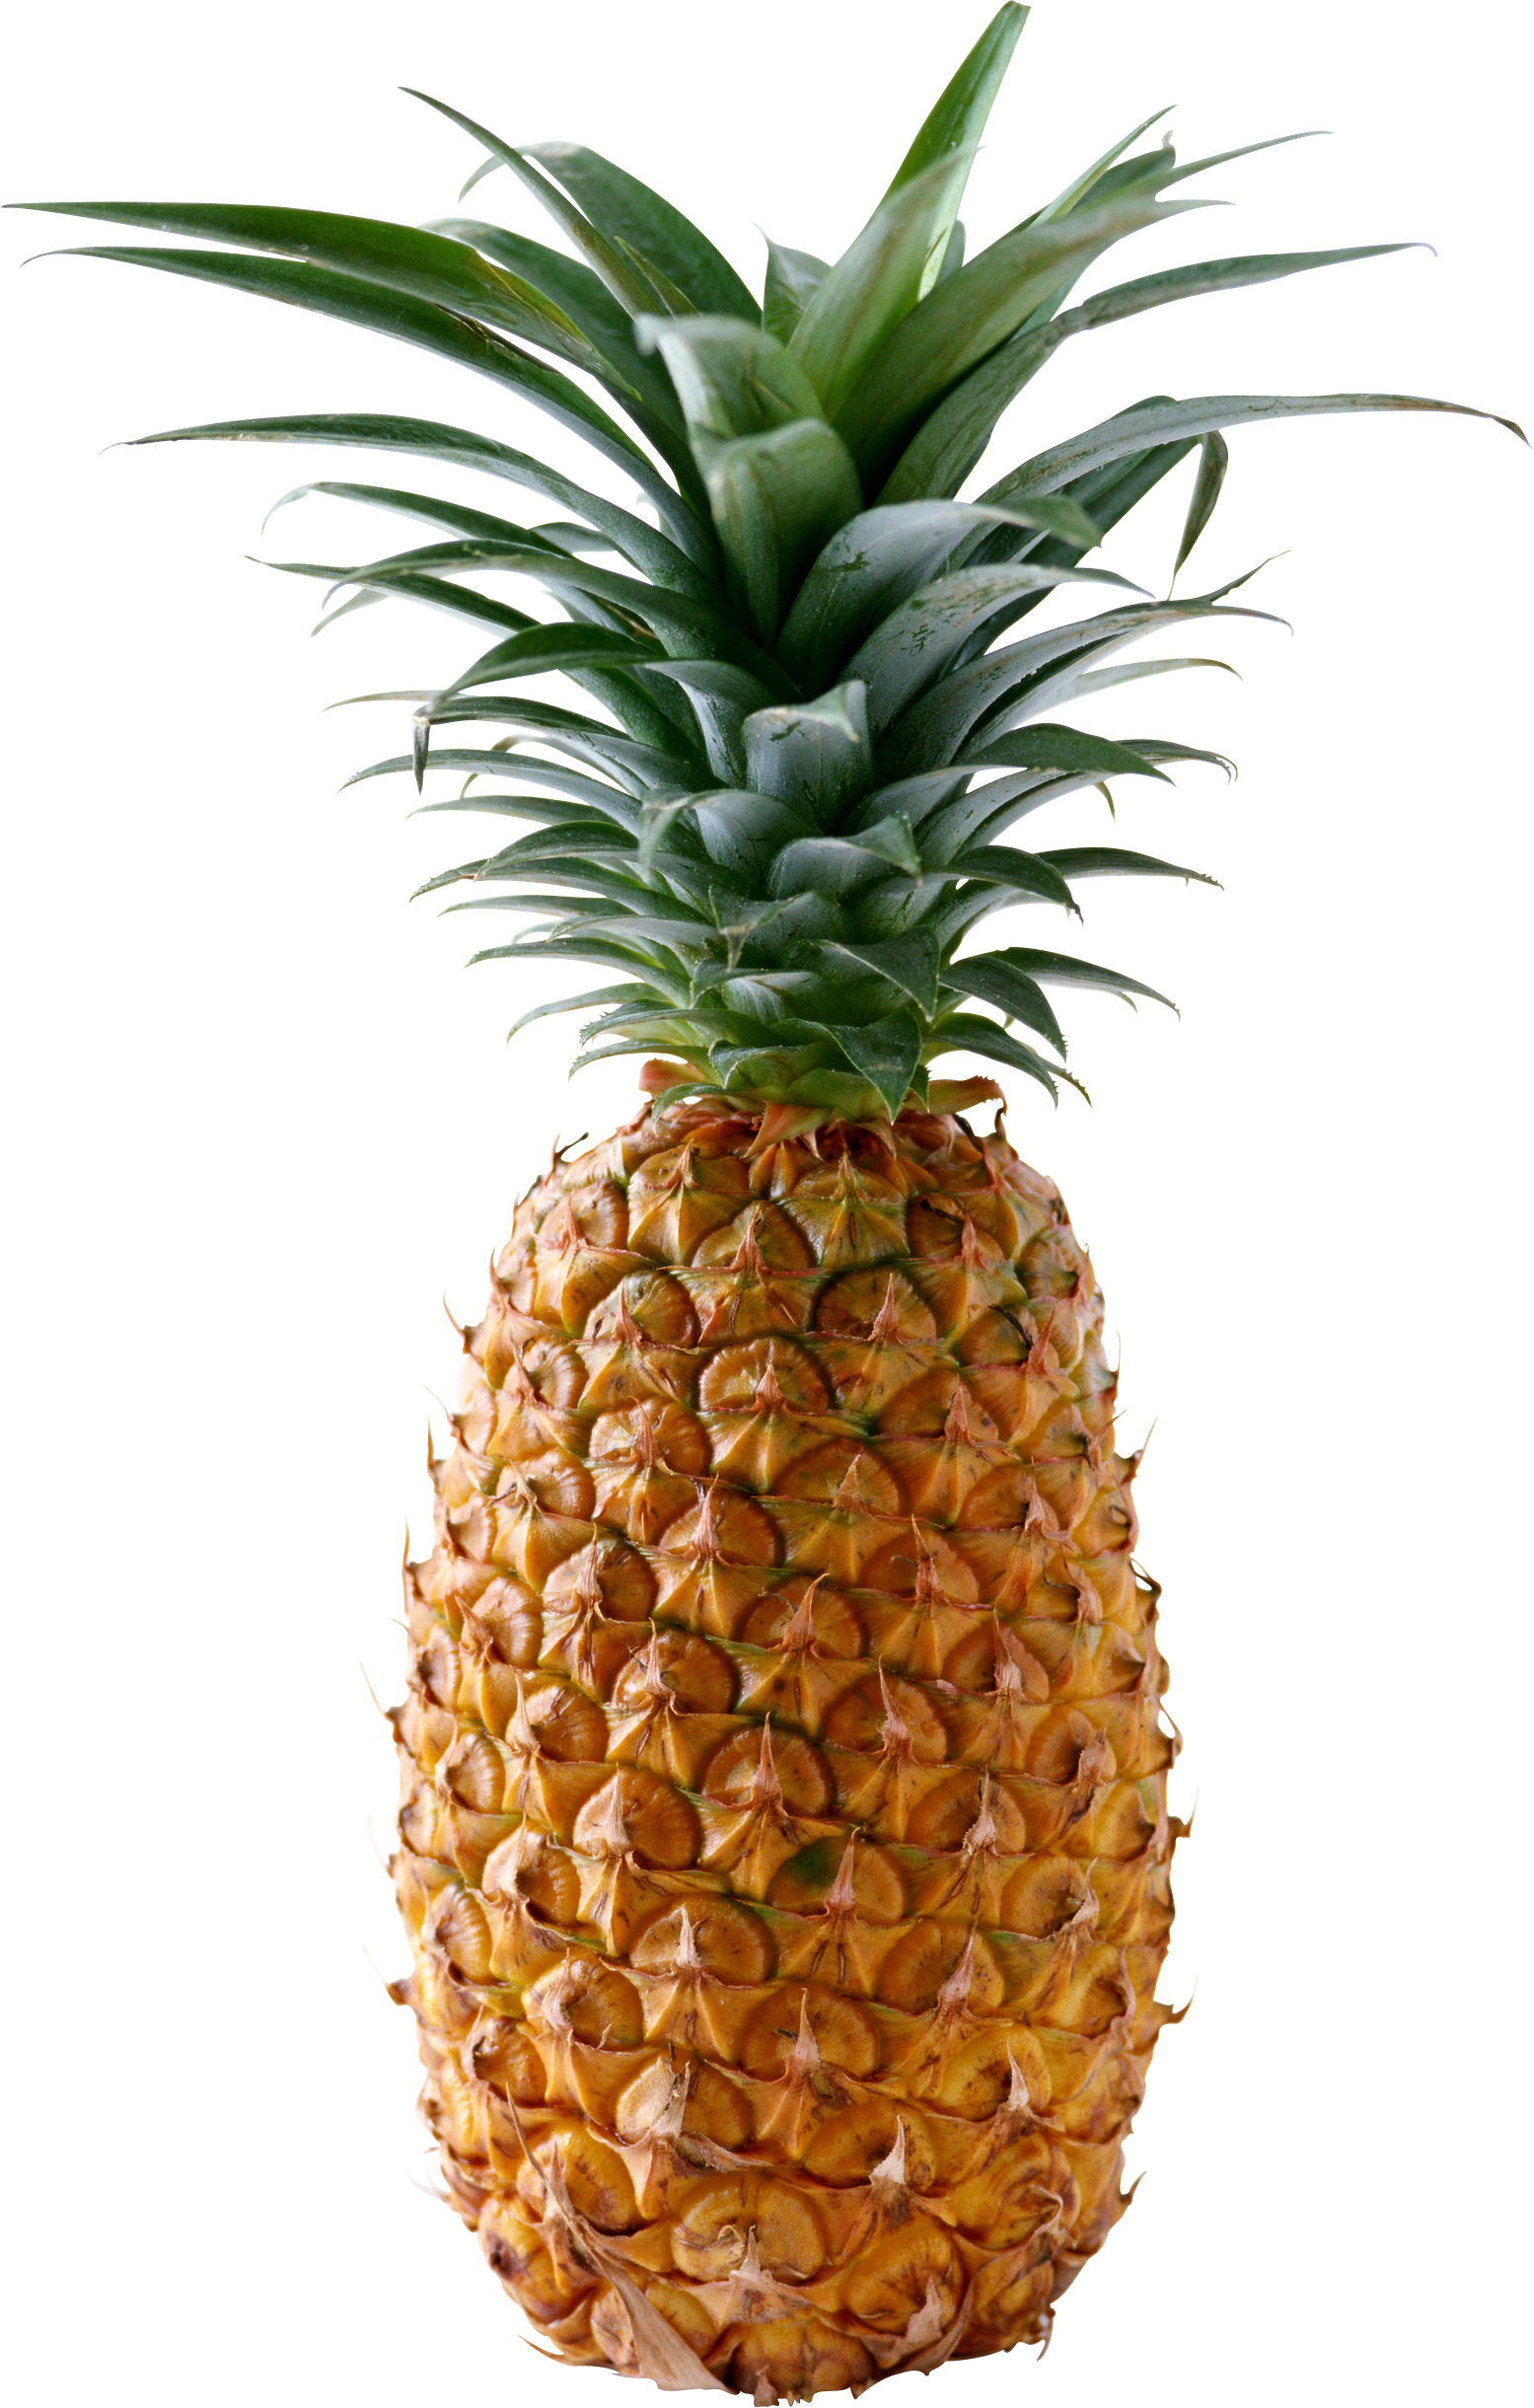 Download - Pineapple HD PNG